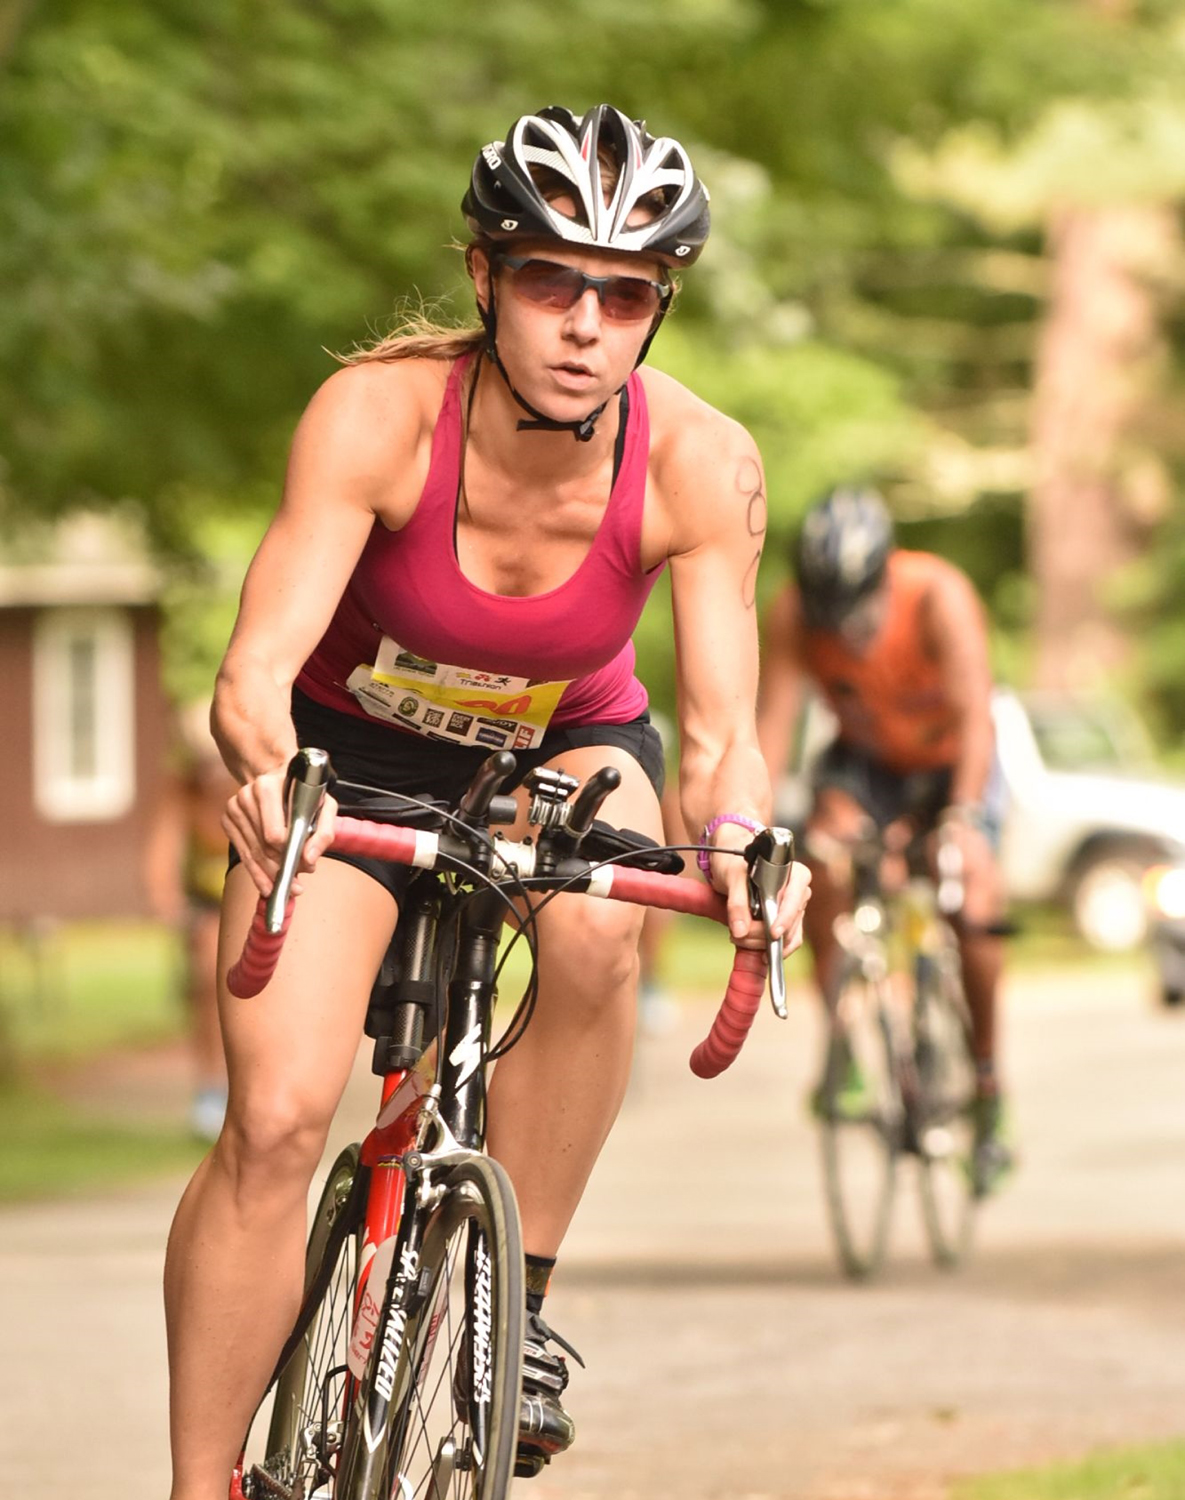 Competitor at the 2016 Vermont Sun Triathlon Series at Lake Dunmore. Pat Hendrick Photography.